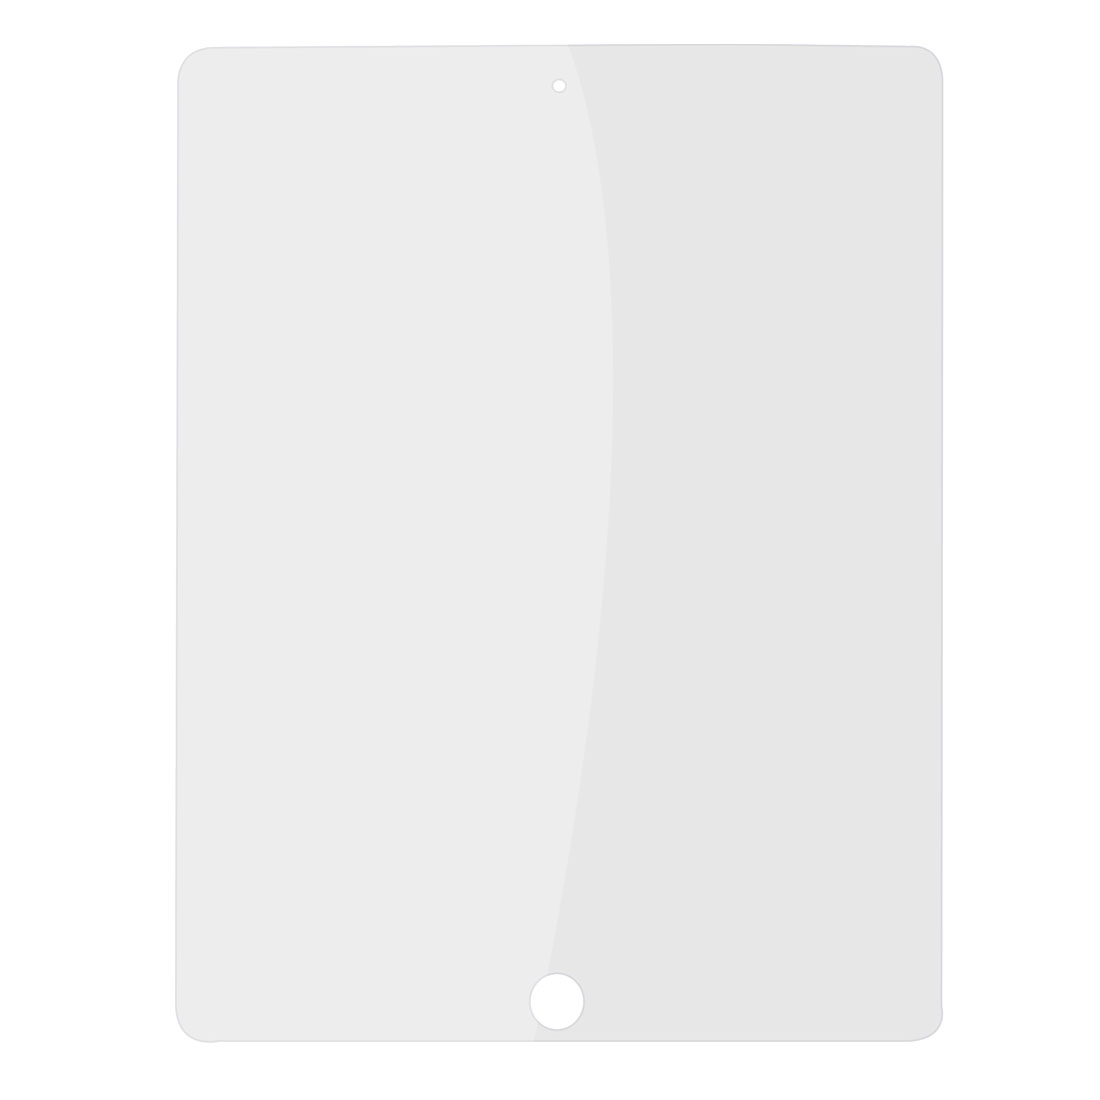 Clear LCD Screen Guard Protector Film for Apple iPad 2 3 4